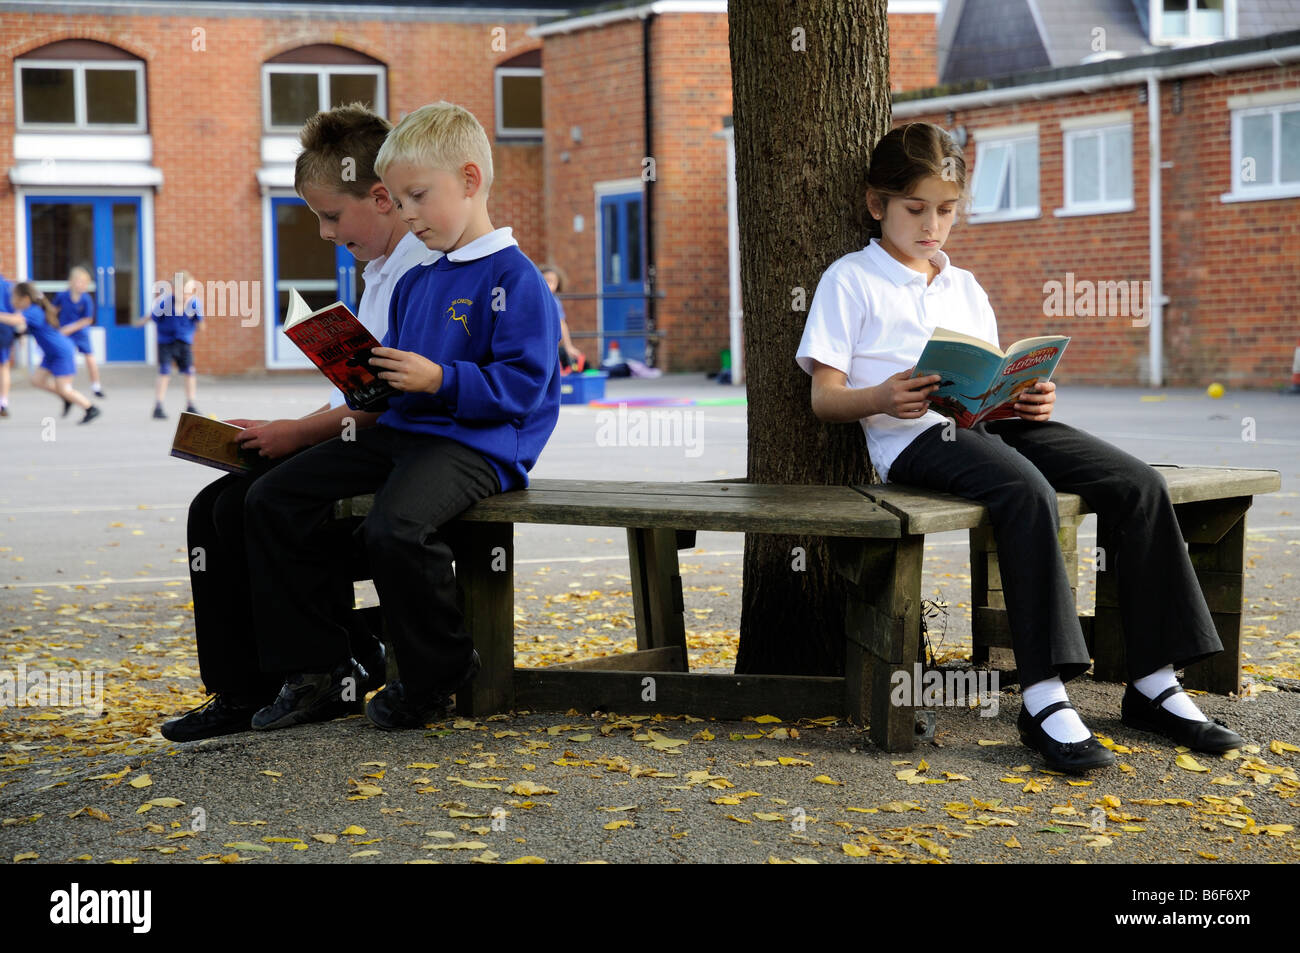 Children reading in a primary school playground - Stock Image